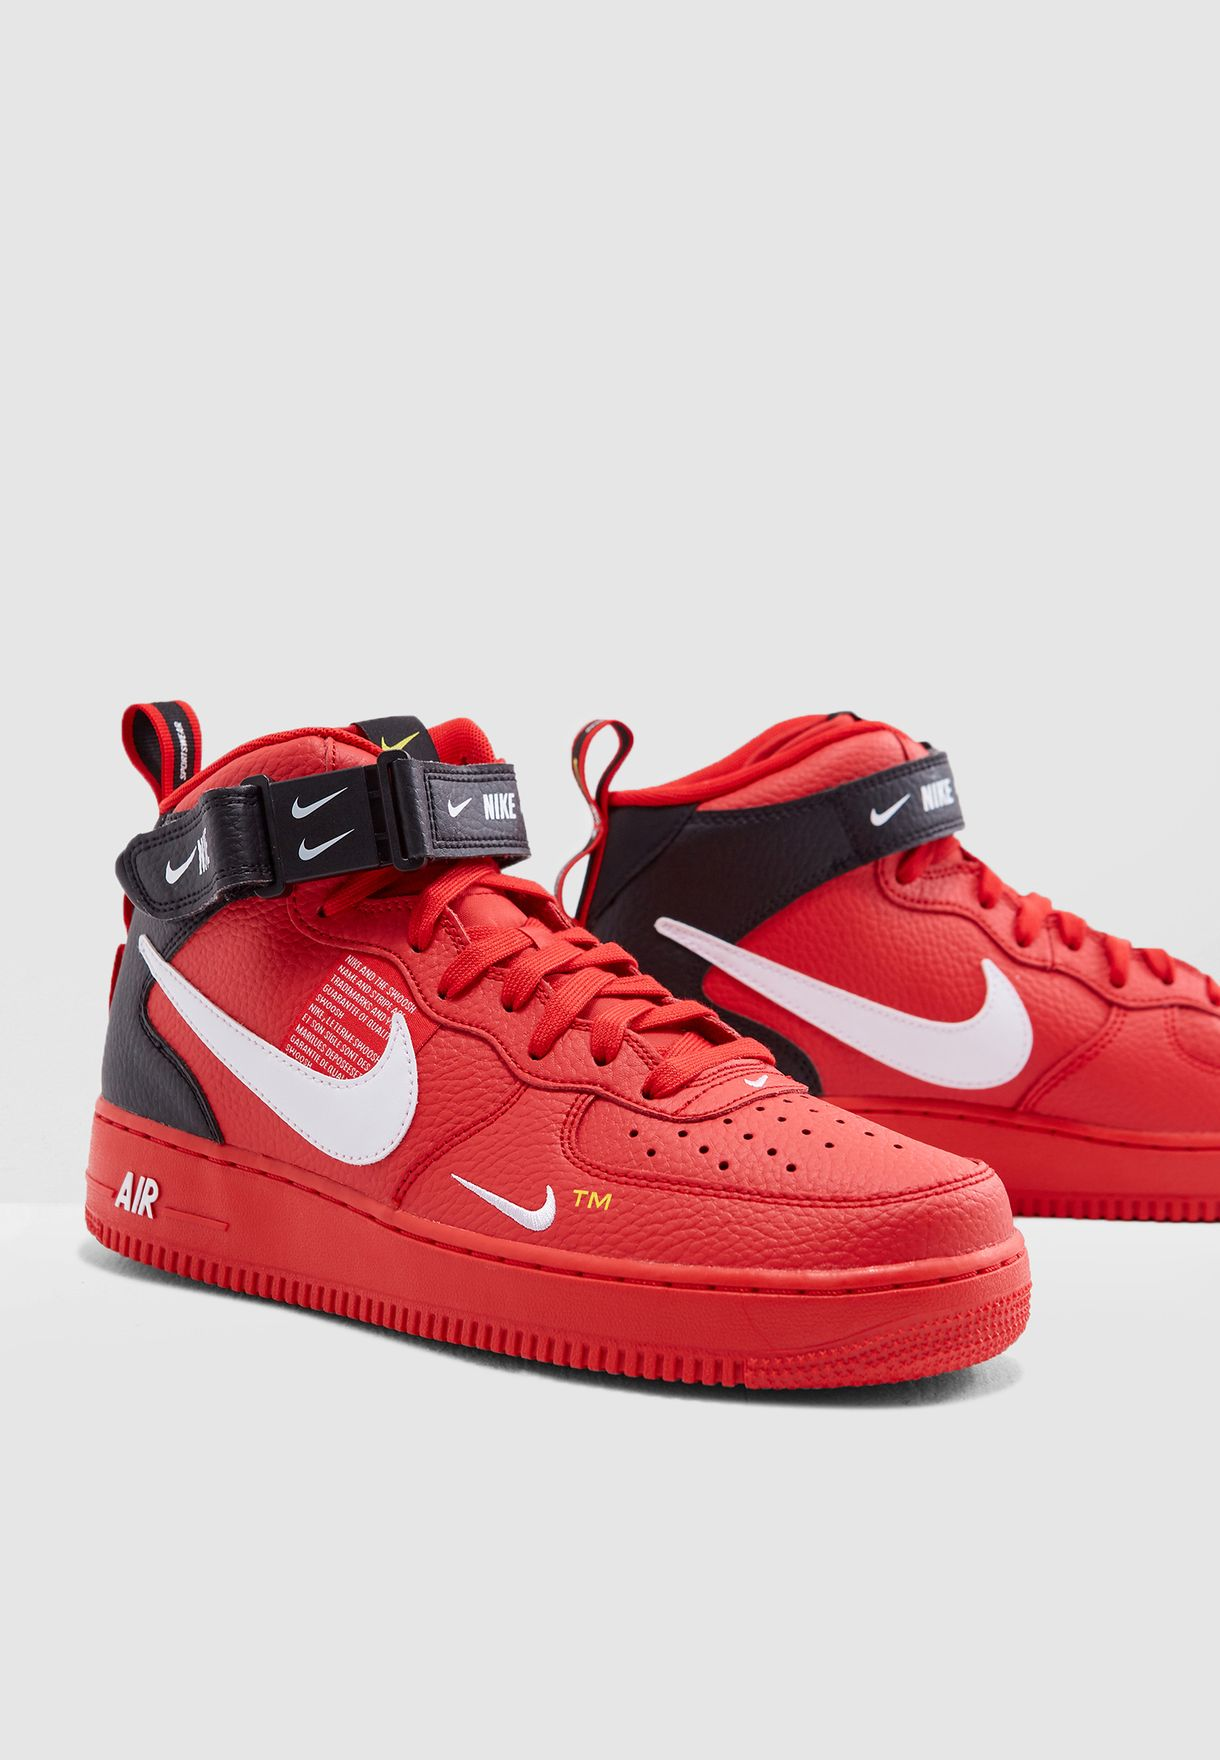 new arrival dd12e 30e86 Shop Nike red Air Force 1 Mid '07 LV8 804609-605 for Men in UAE ...